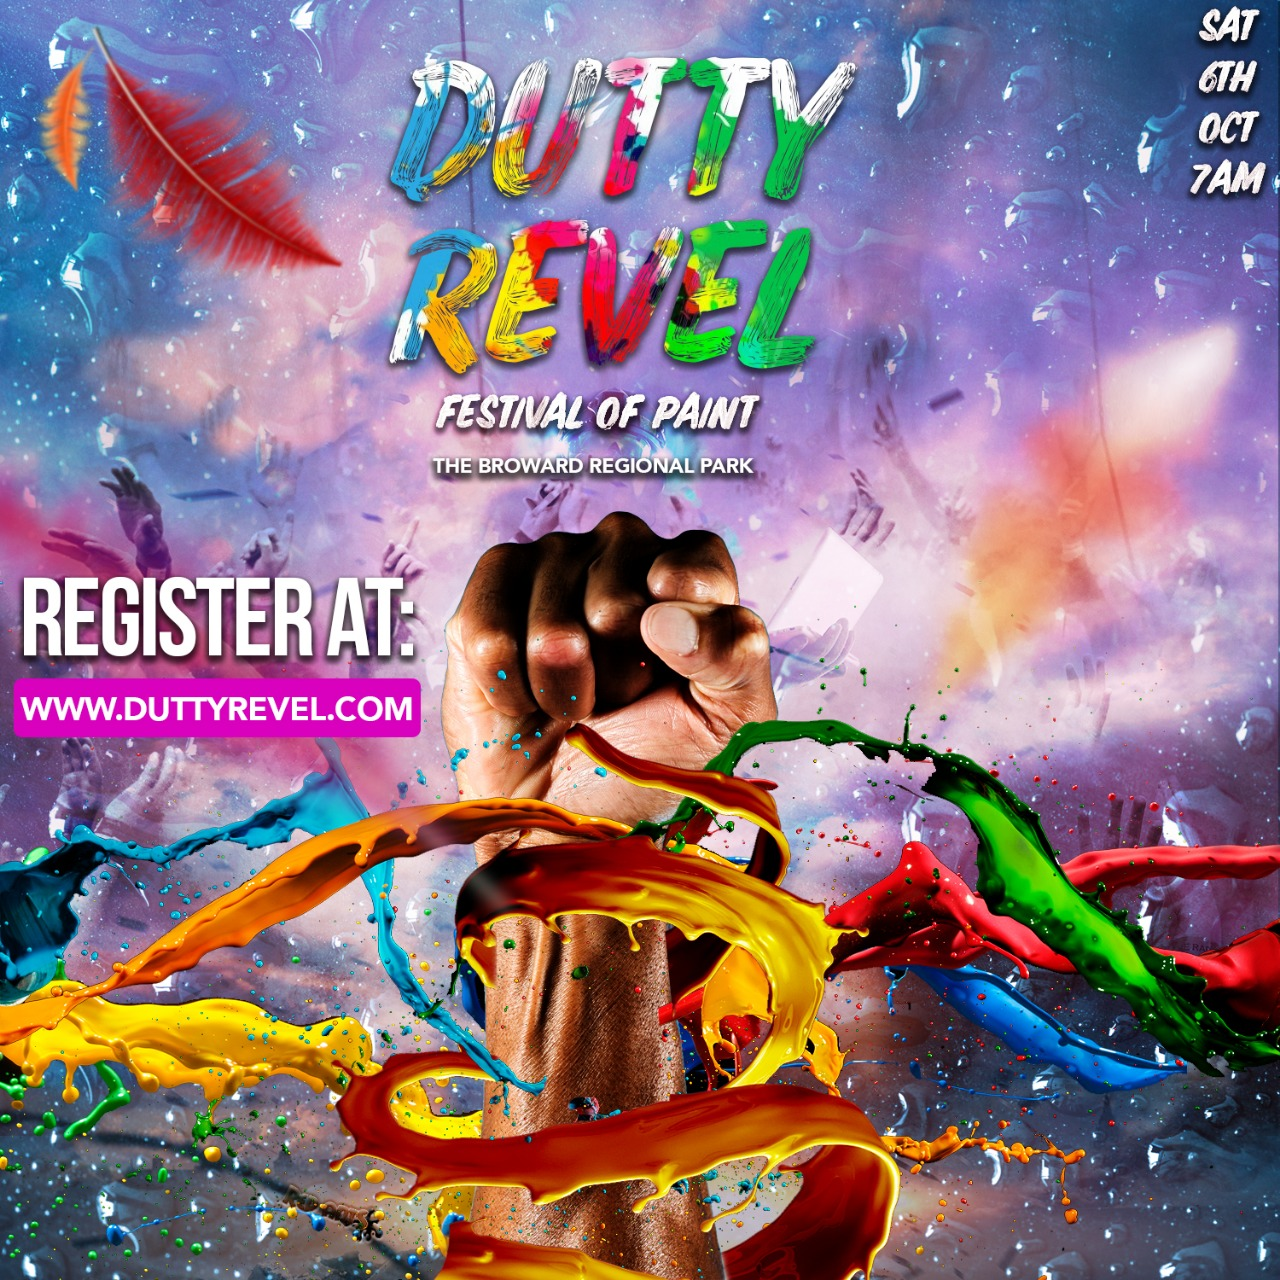 Tickets for Dutty Revel in Lauderhill from ShowClix